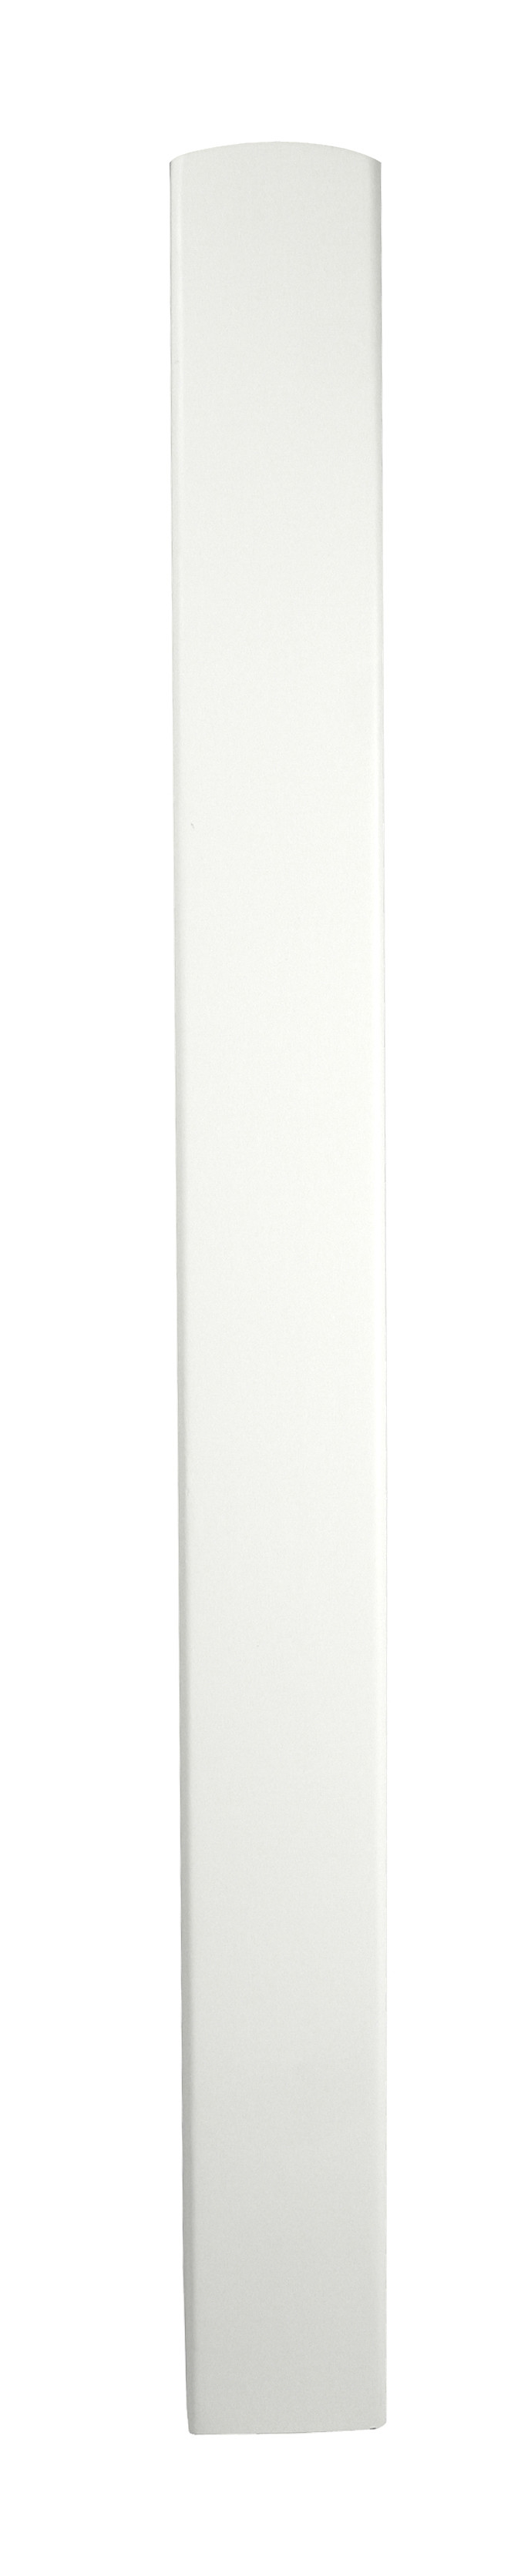 1 White Newel Base 915 90